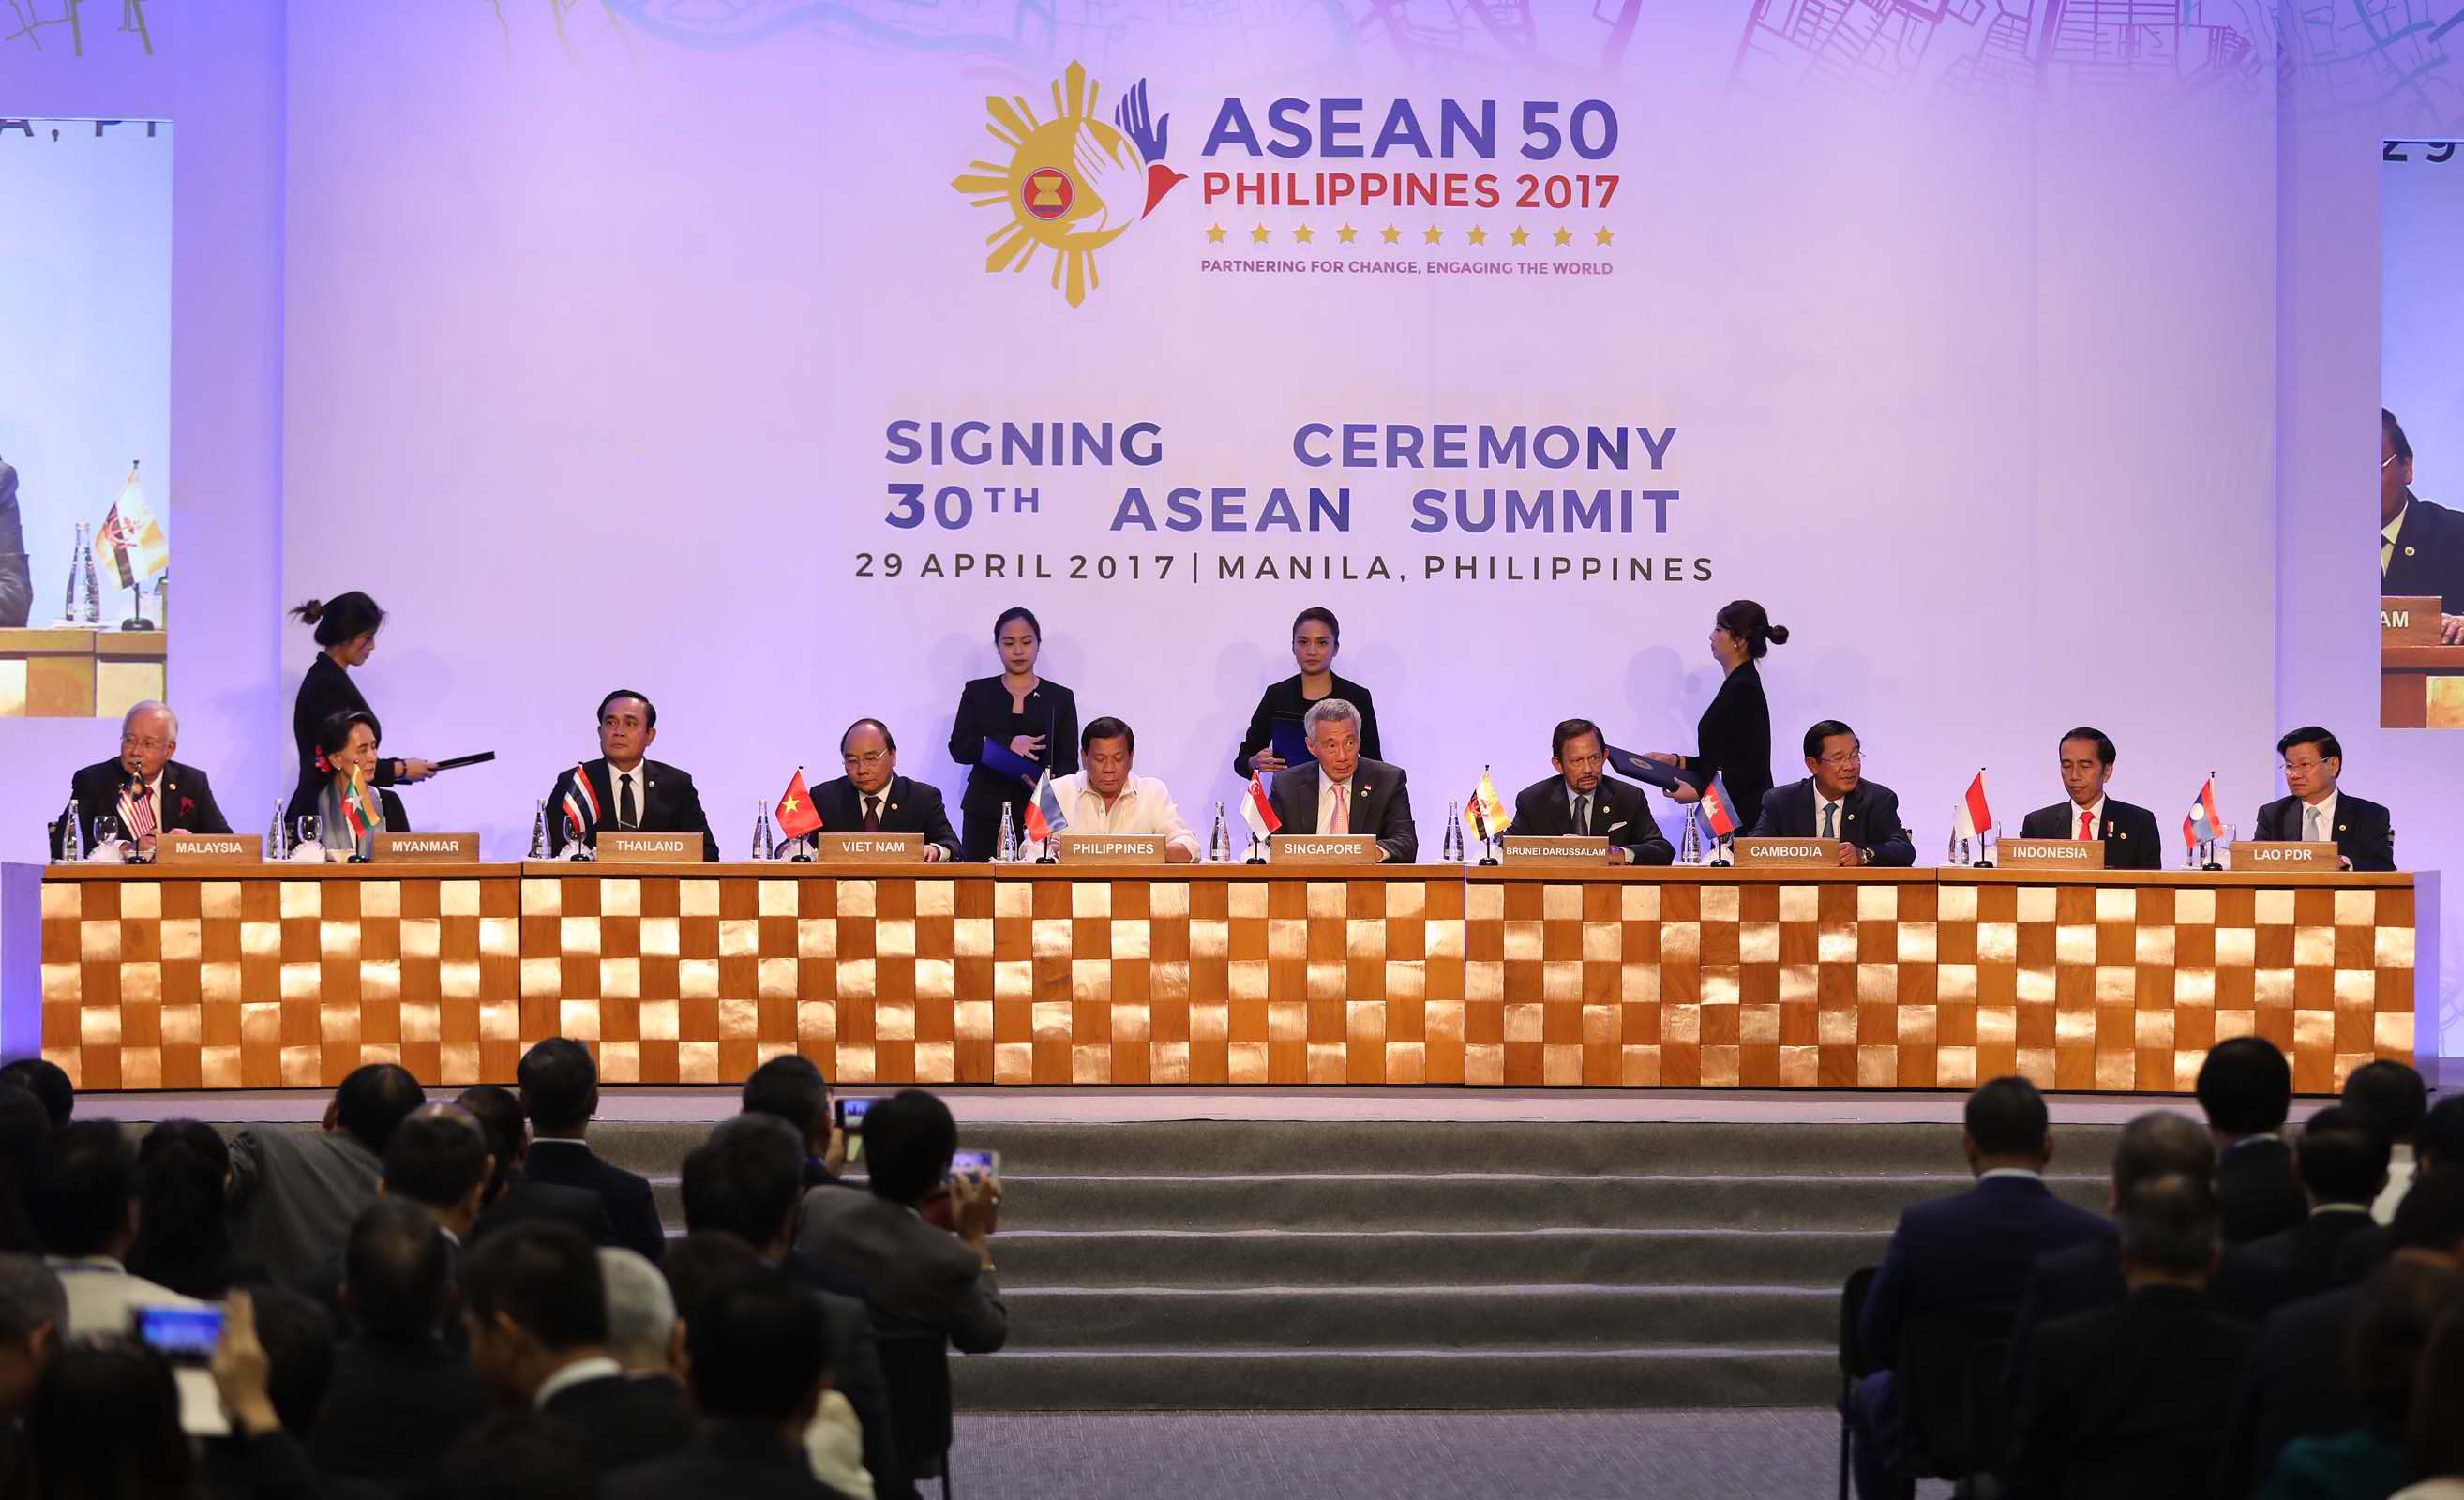 The 30th ASEAN Summit was held at the Philippine International Convention Center (PICC) in Pasay City. (Photo: Avito C. Dalan/ Philippine News Agency)